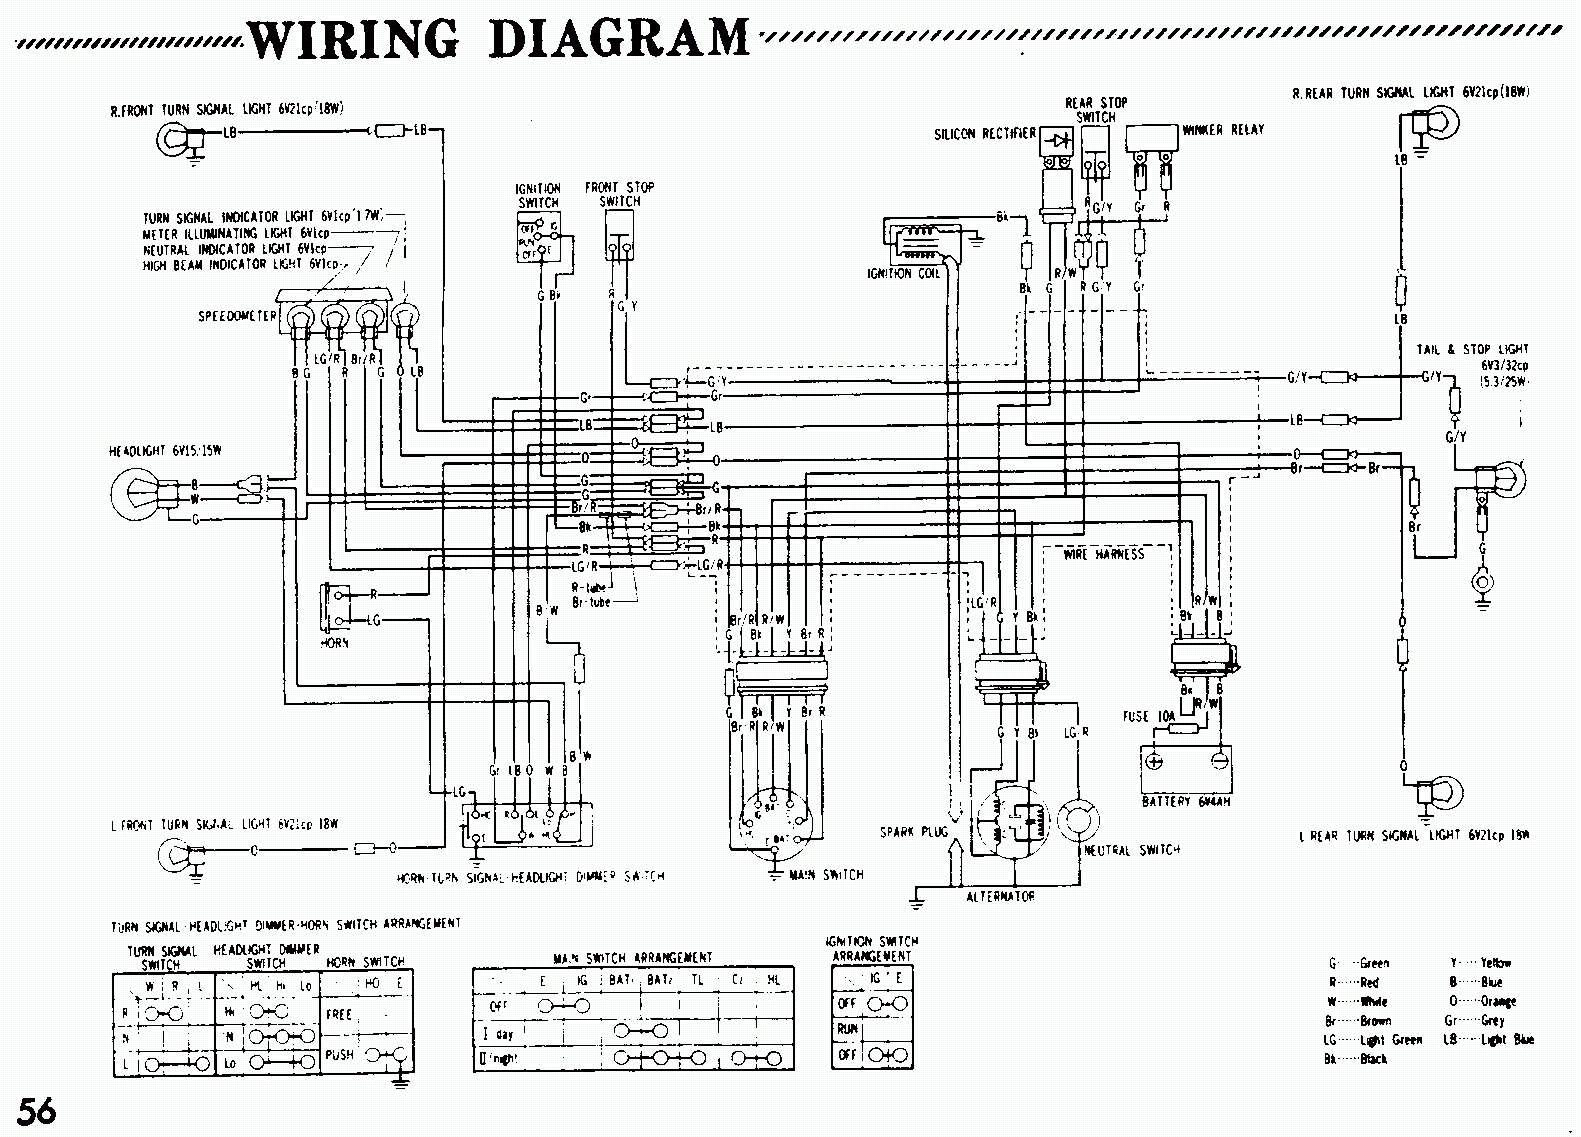 1977 ct70 wiring diagram mic tbolt usa tech database llc